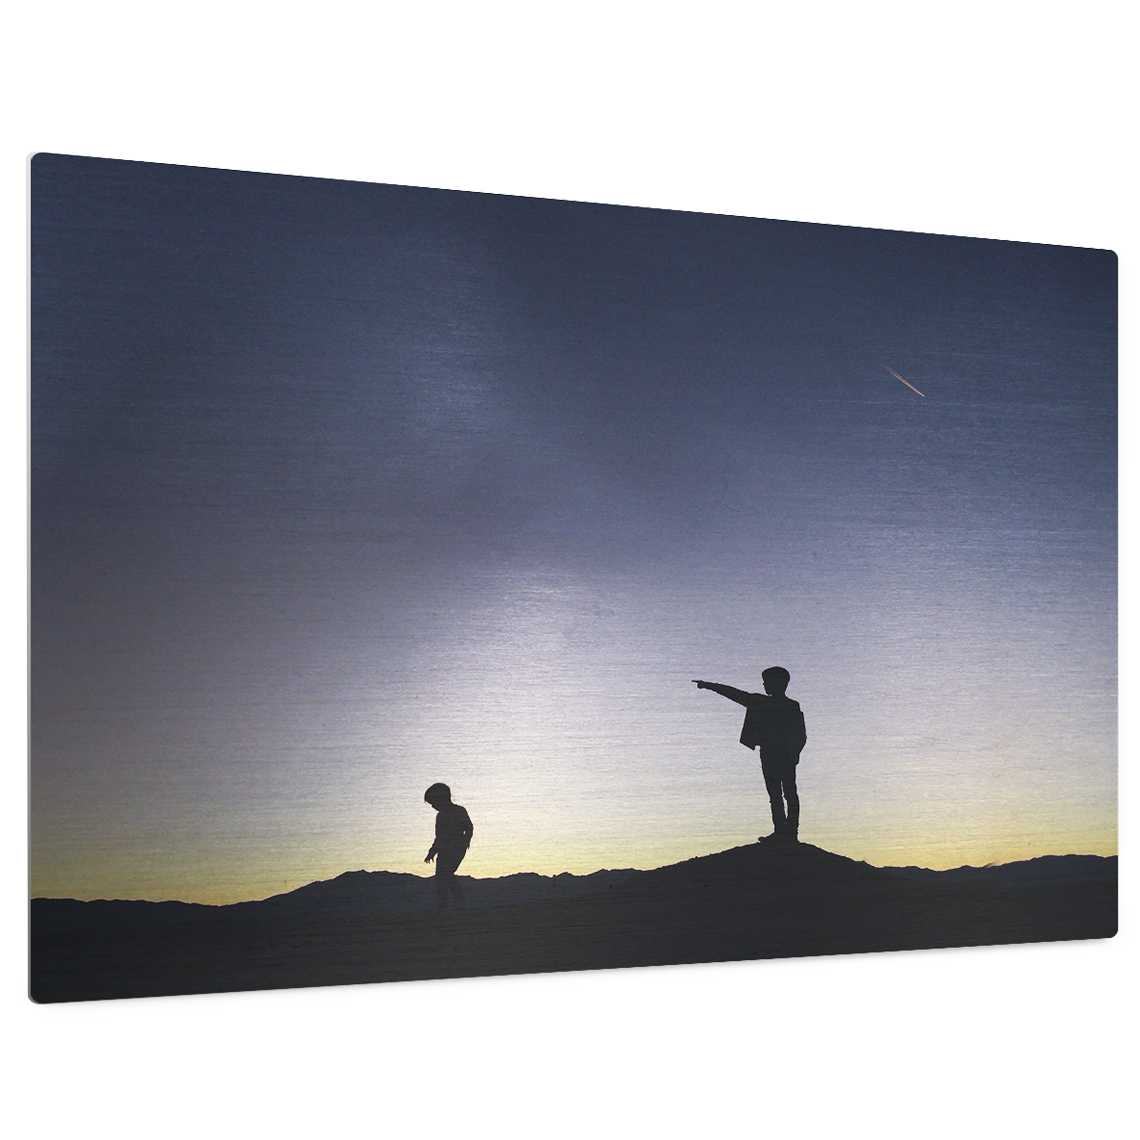 Metal Photo Panel, 11x14 | Metal Photo Panel | Home Décor | Snapfish US